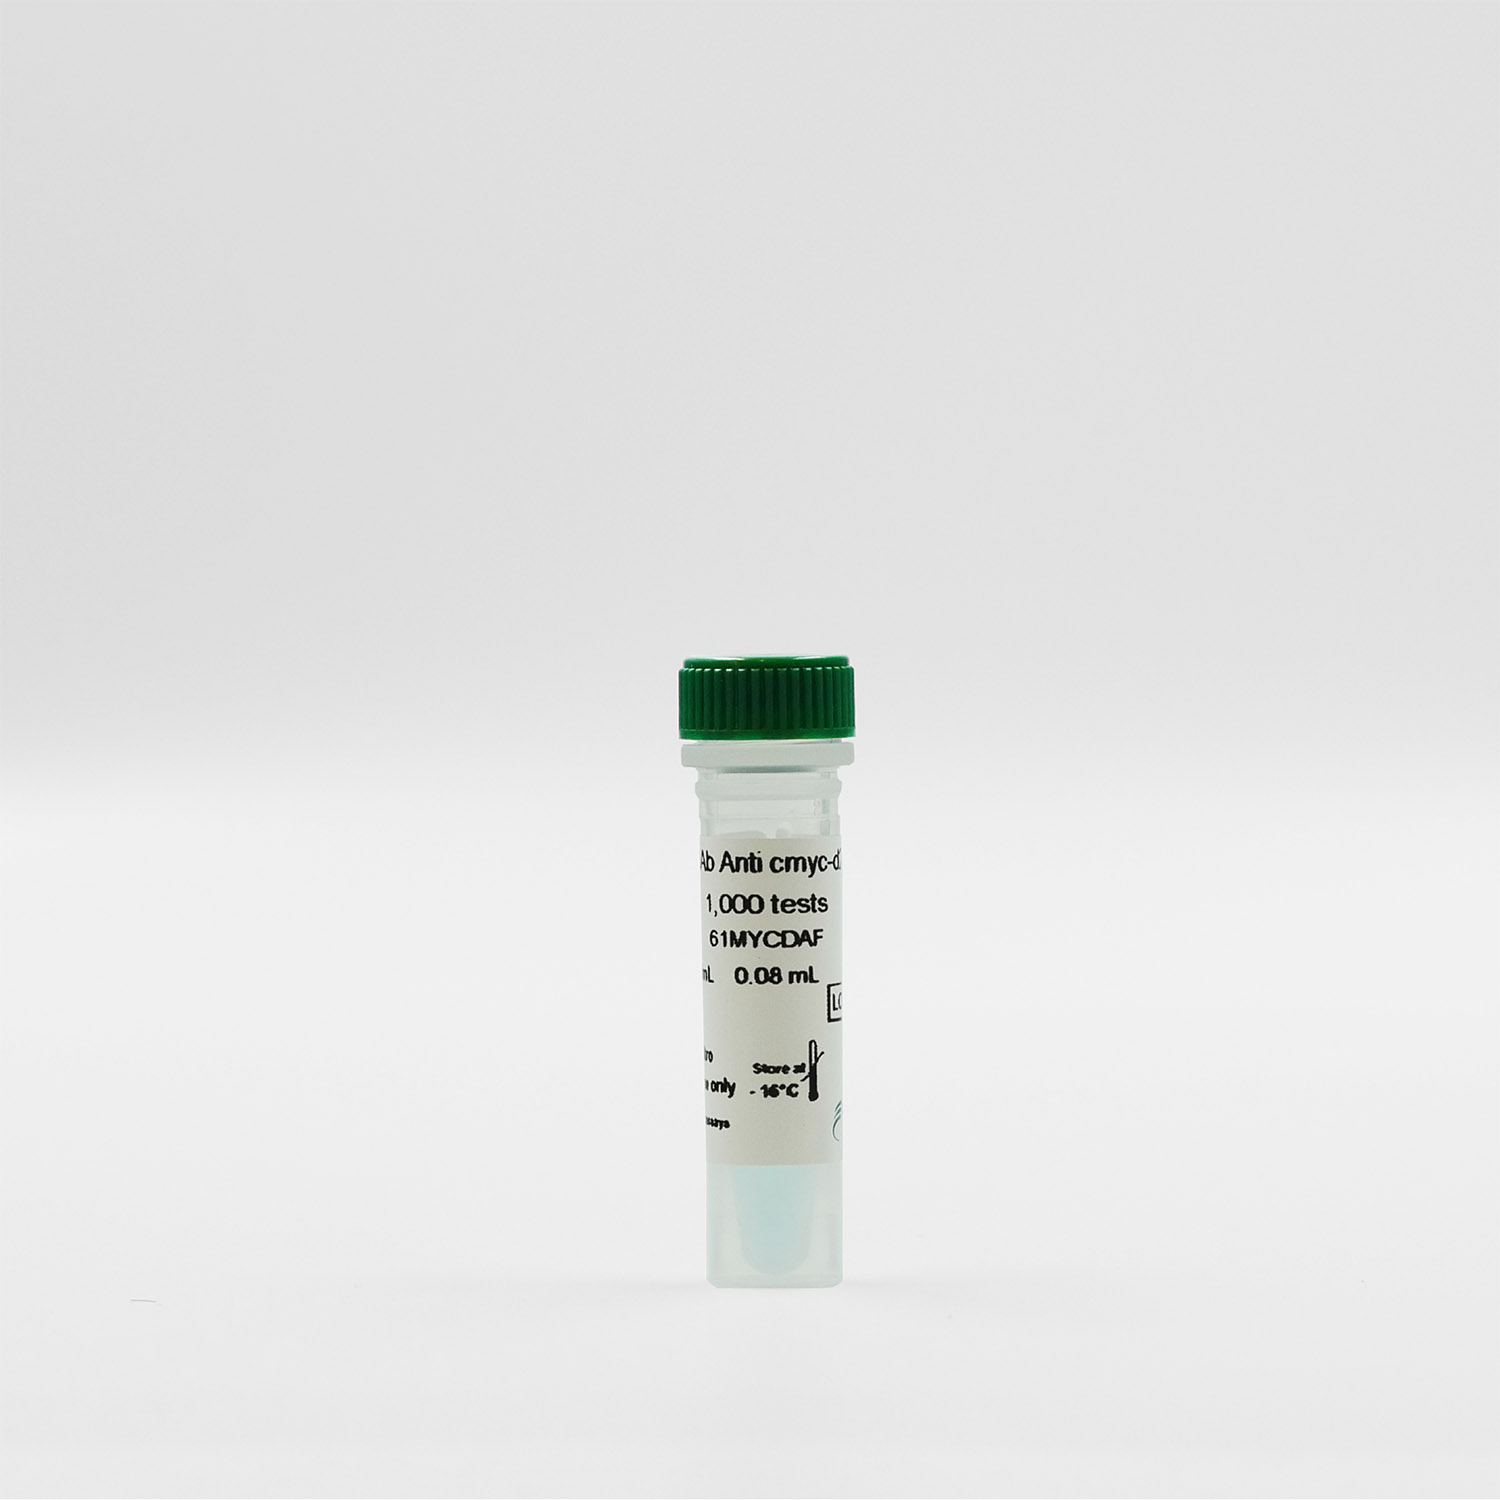 Photography of the MAb Anti cmyc-d2 vial